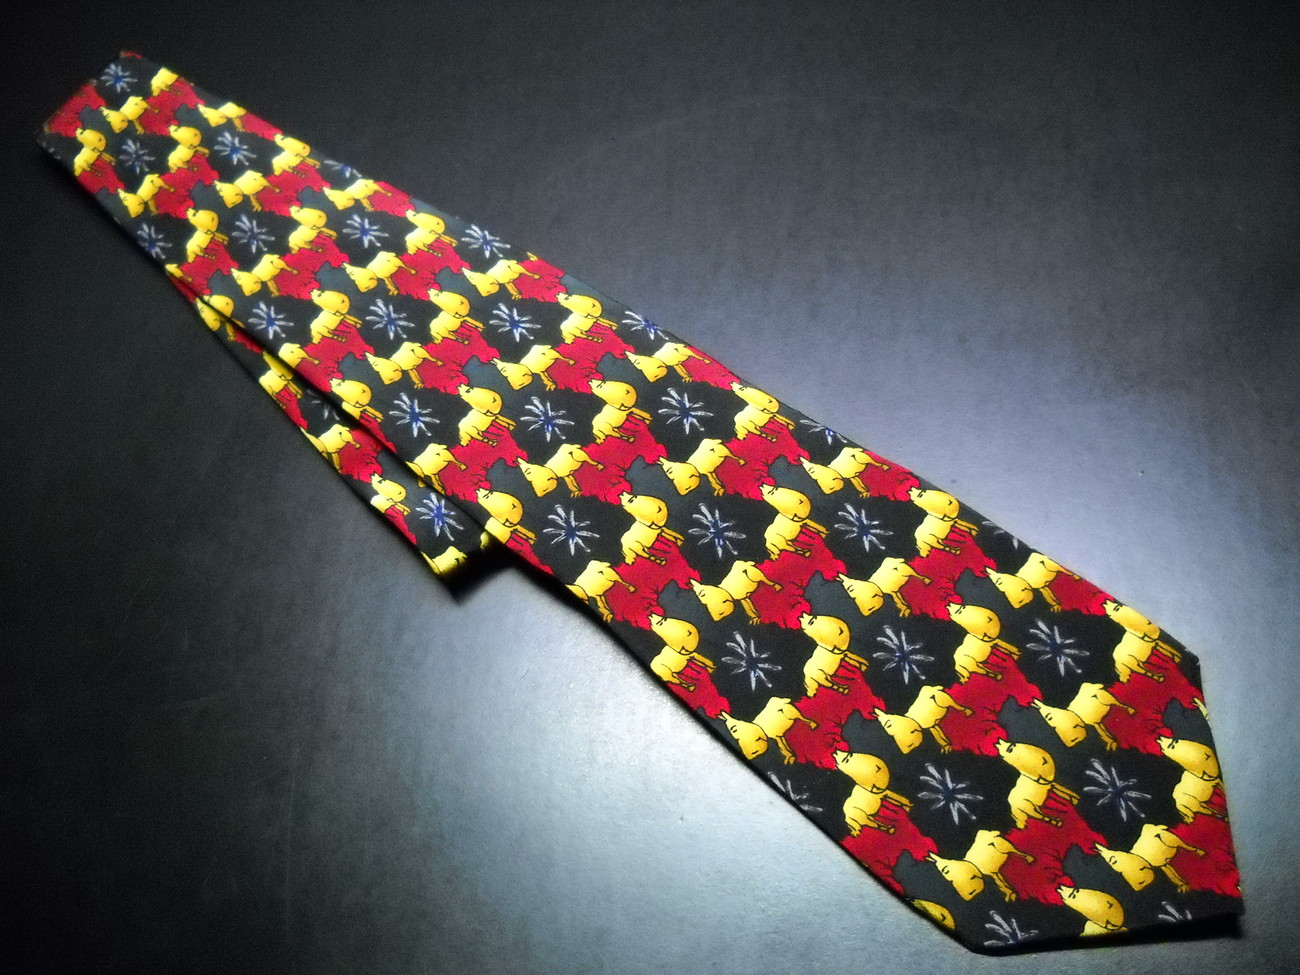 Tie j garcia 1996 special christmas limited edition black with gold   red 01